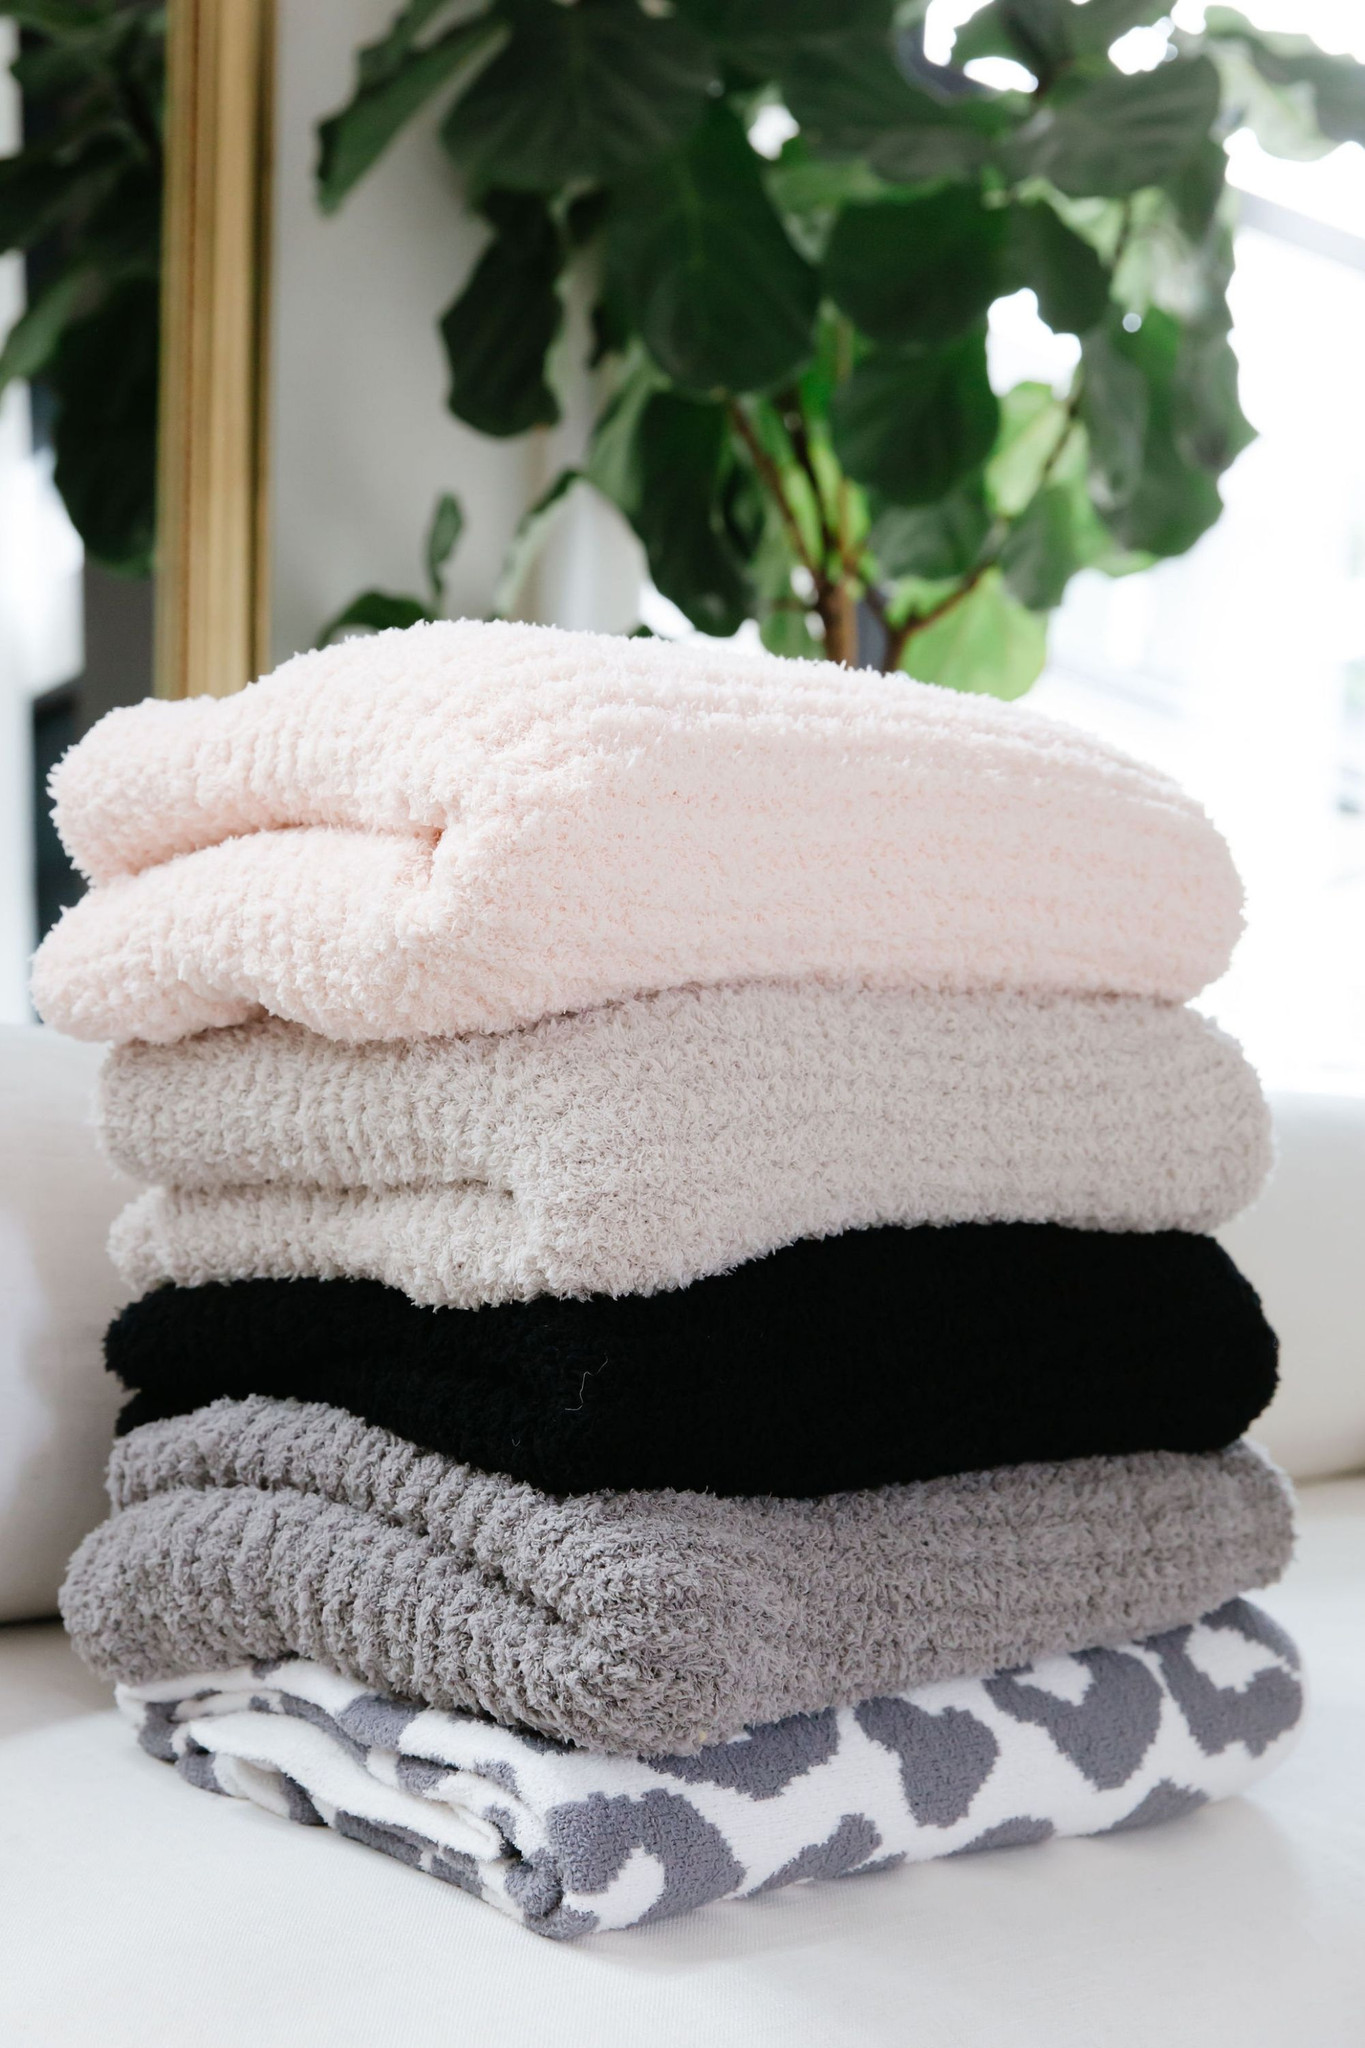 Cozy up in the most dreamy blanket you have ever seen!  LUXE By PRIV bring our brand new assortment of plush heavyweight and oversized throw blankets.  In a wide assortment of colours, these are the perfect gift for somebody you care for...even if it's yourself!  Available in Cream, Light Grey, Charcoal Grey, Blush/Pink, Black, and Grey Leopard  100% Polyester